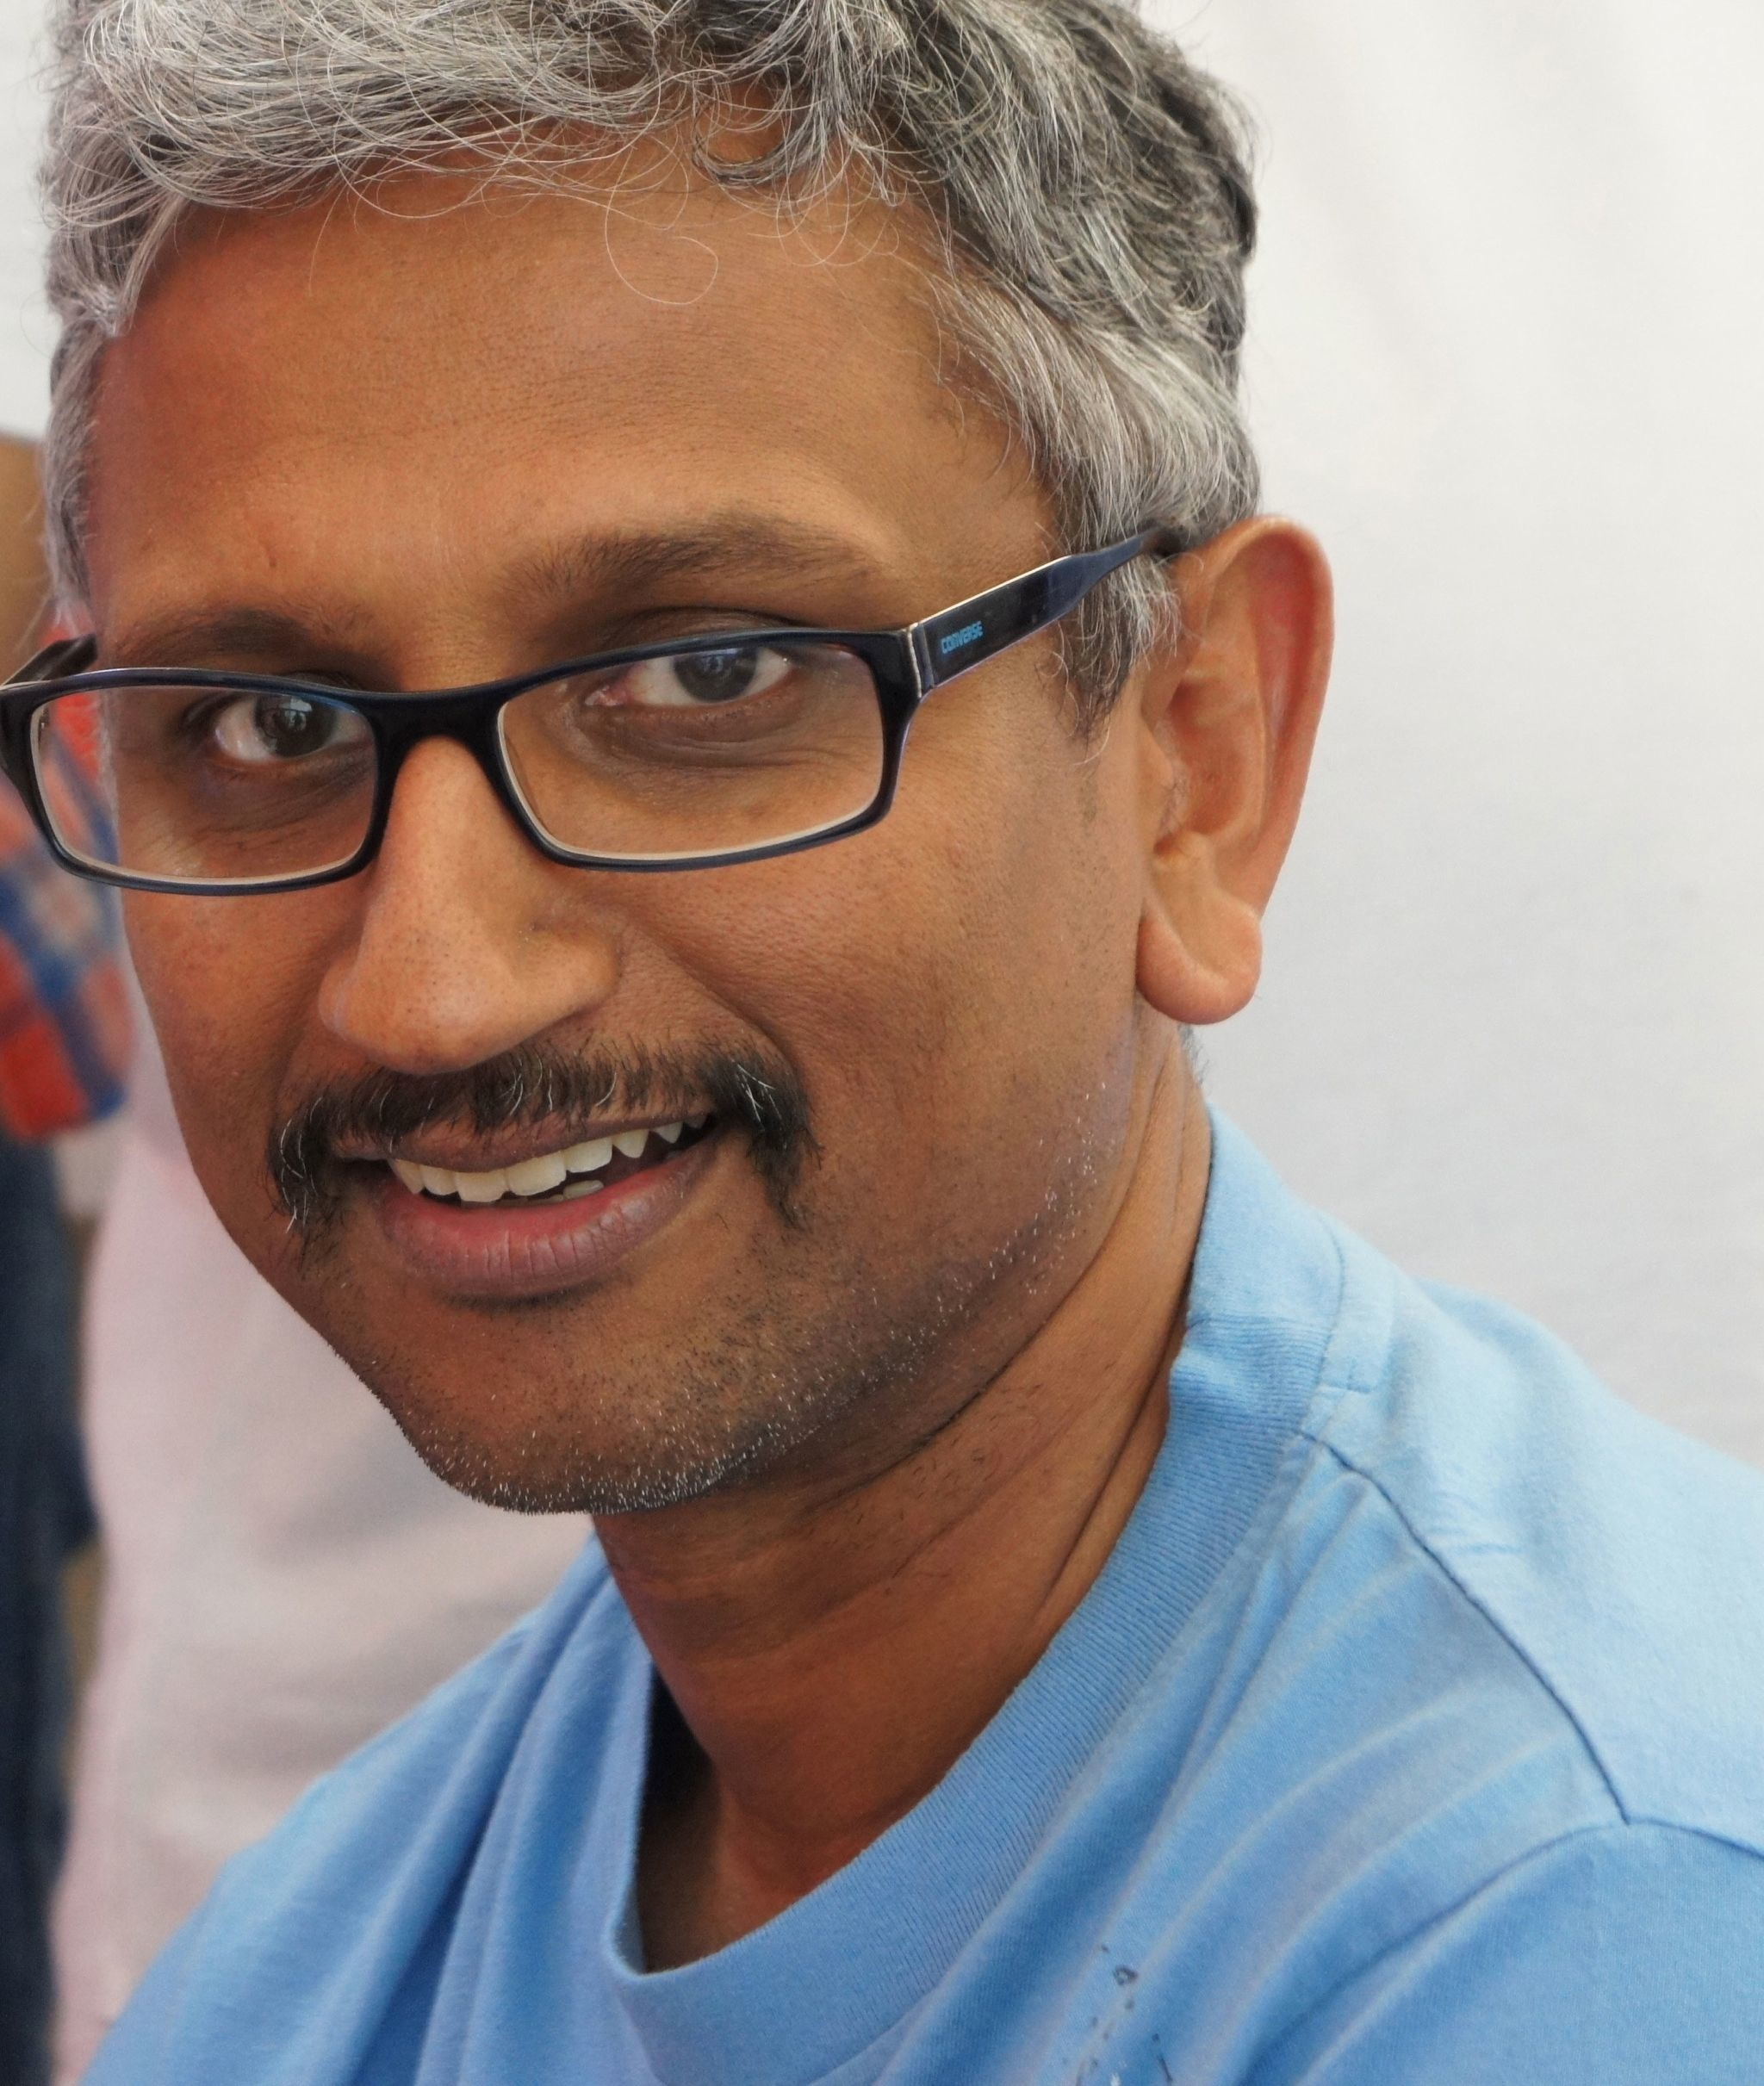 Apple Hires Another Veteran of Technological Media: Anand Shimpi, Founder of AnandTech